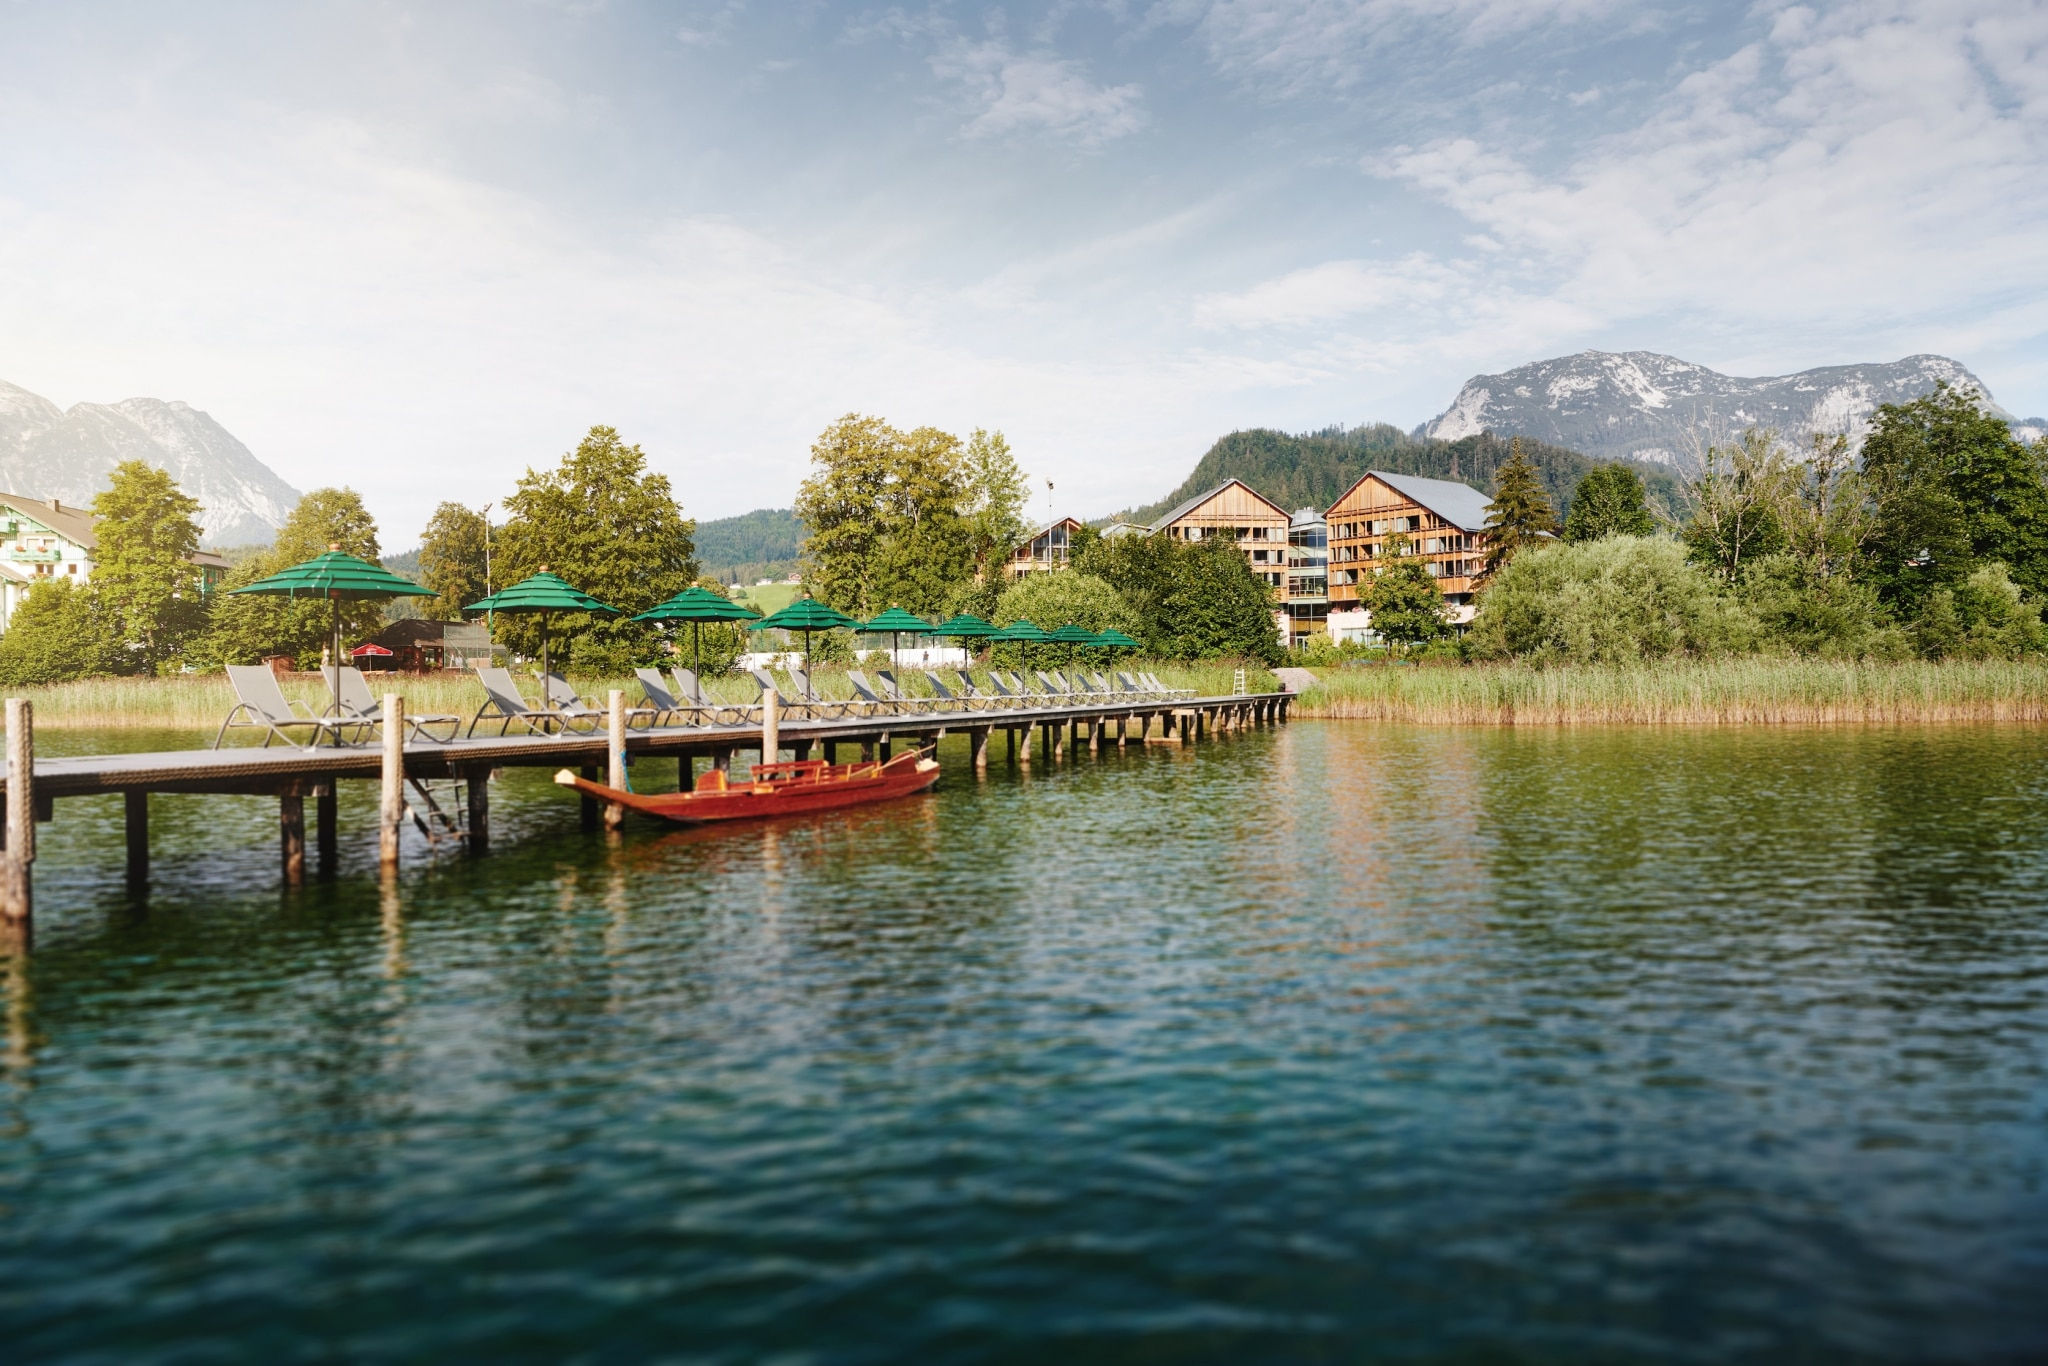 View at Vivamayr Altaussee from the lake